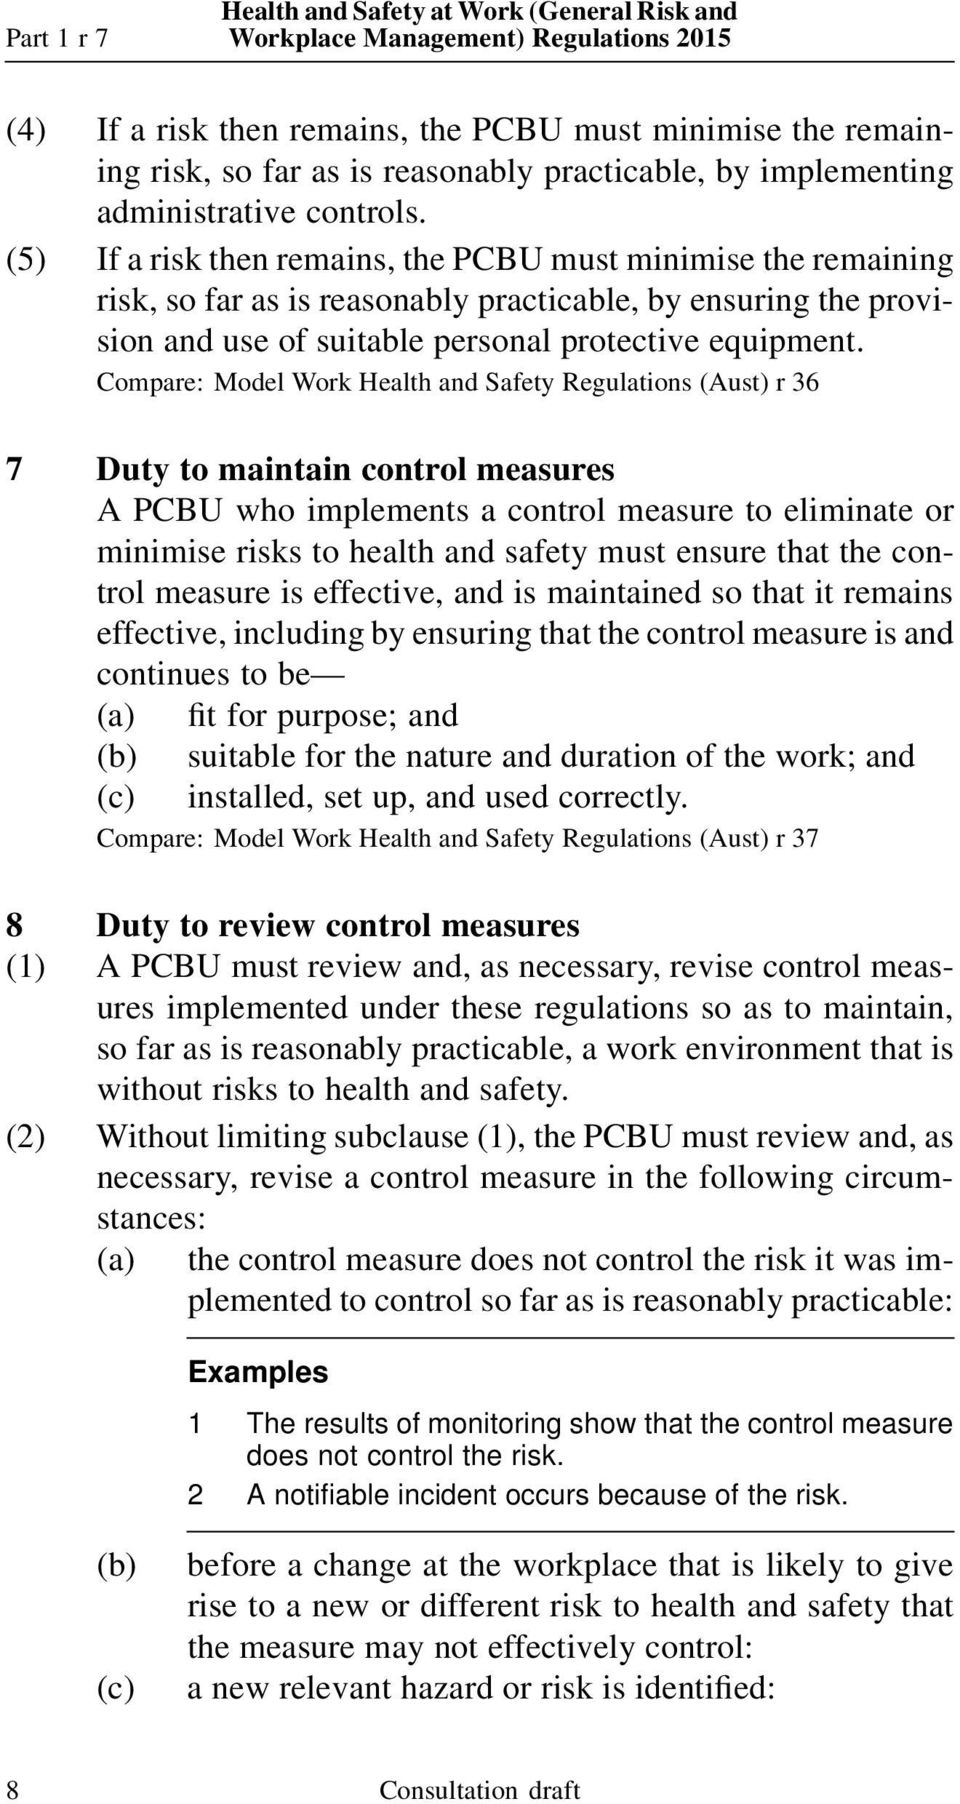 Compare: Model Work Health and Safety Regulations (Aust) r 36 7 Duty to maintain control measures A PCBU who implements a control measure to eliminate or minimise risks to health and safety must